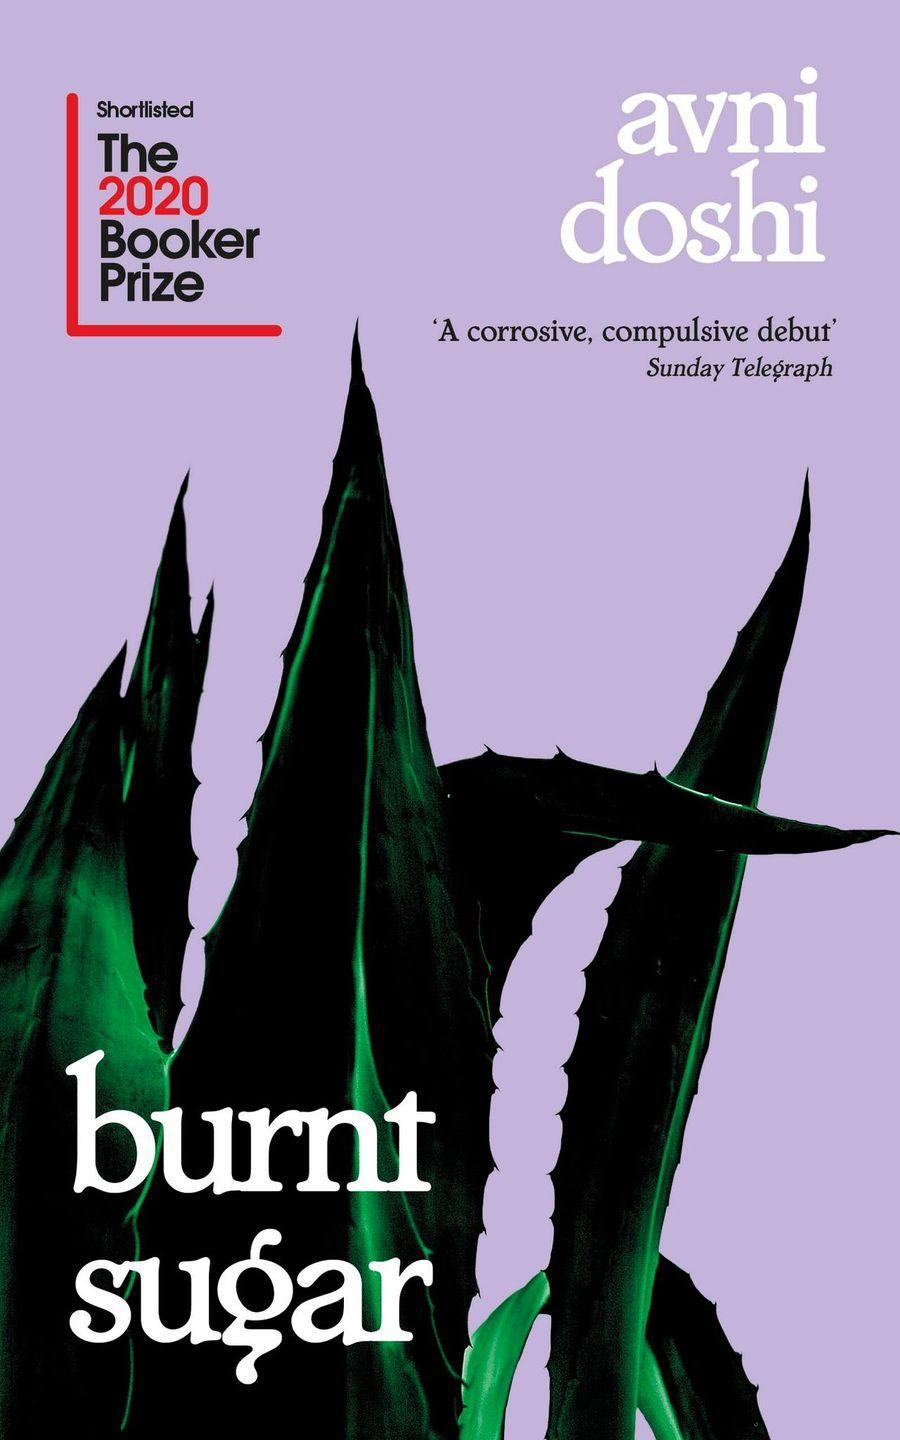 """<p>This startling debut was already shortlisted for the Booker Prize, and won the 2021 Sushila Devi Award in India. The novel is about a fractious relationship between an adventurous mother now in her elderly years, and her resentful daughter, tasked with caring for a woman who never seemed to care for her.<br><br>""""Burnt Sugar by Avni Doshi is a story of a toxic mother<br>daughter relationship and it's seen through the prism of the mother's dementia."""" - Sarah-Jane Mee.</p><p><a class=""""link rapid-noclick-resp"""" href=""""https://www.amazon.co.uk/Burnt-Sugar-Avni-Doshi/dp/024144151X?tag=hearstuk-yahoo-21&ascsubtag=%5Bartid%7C1927.g.35797924%5Bsrc%7Cyahoo-uk"""" rel=""""nofollow noopener"""" target=""""_blank"""" data-ylk=""""slk:SHOP NOW"""">SHOP NOW</a> </p>"""